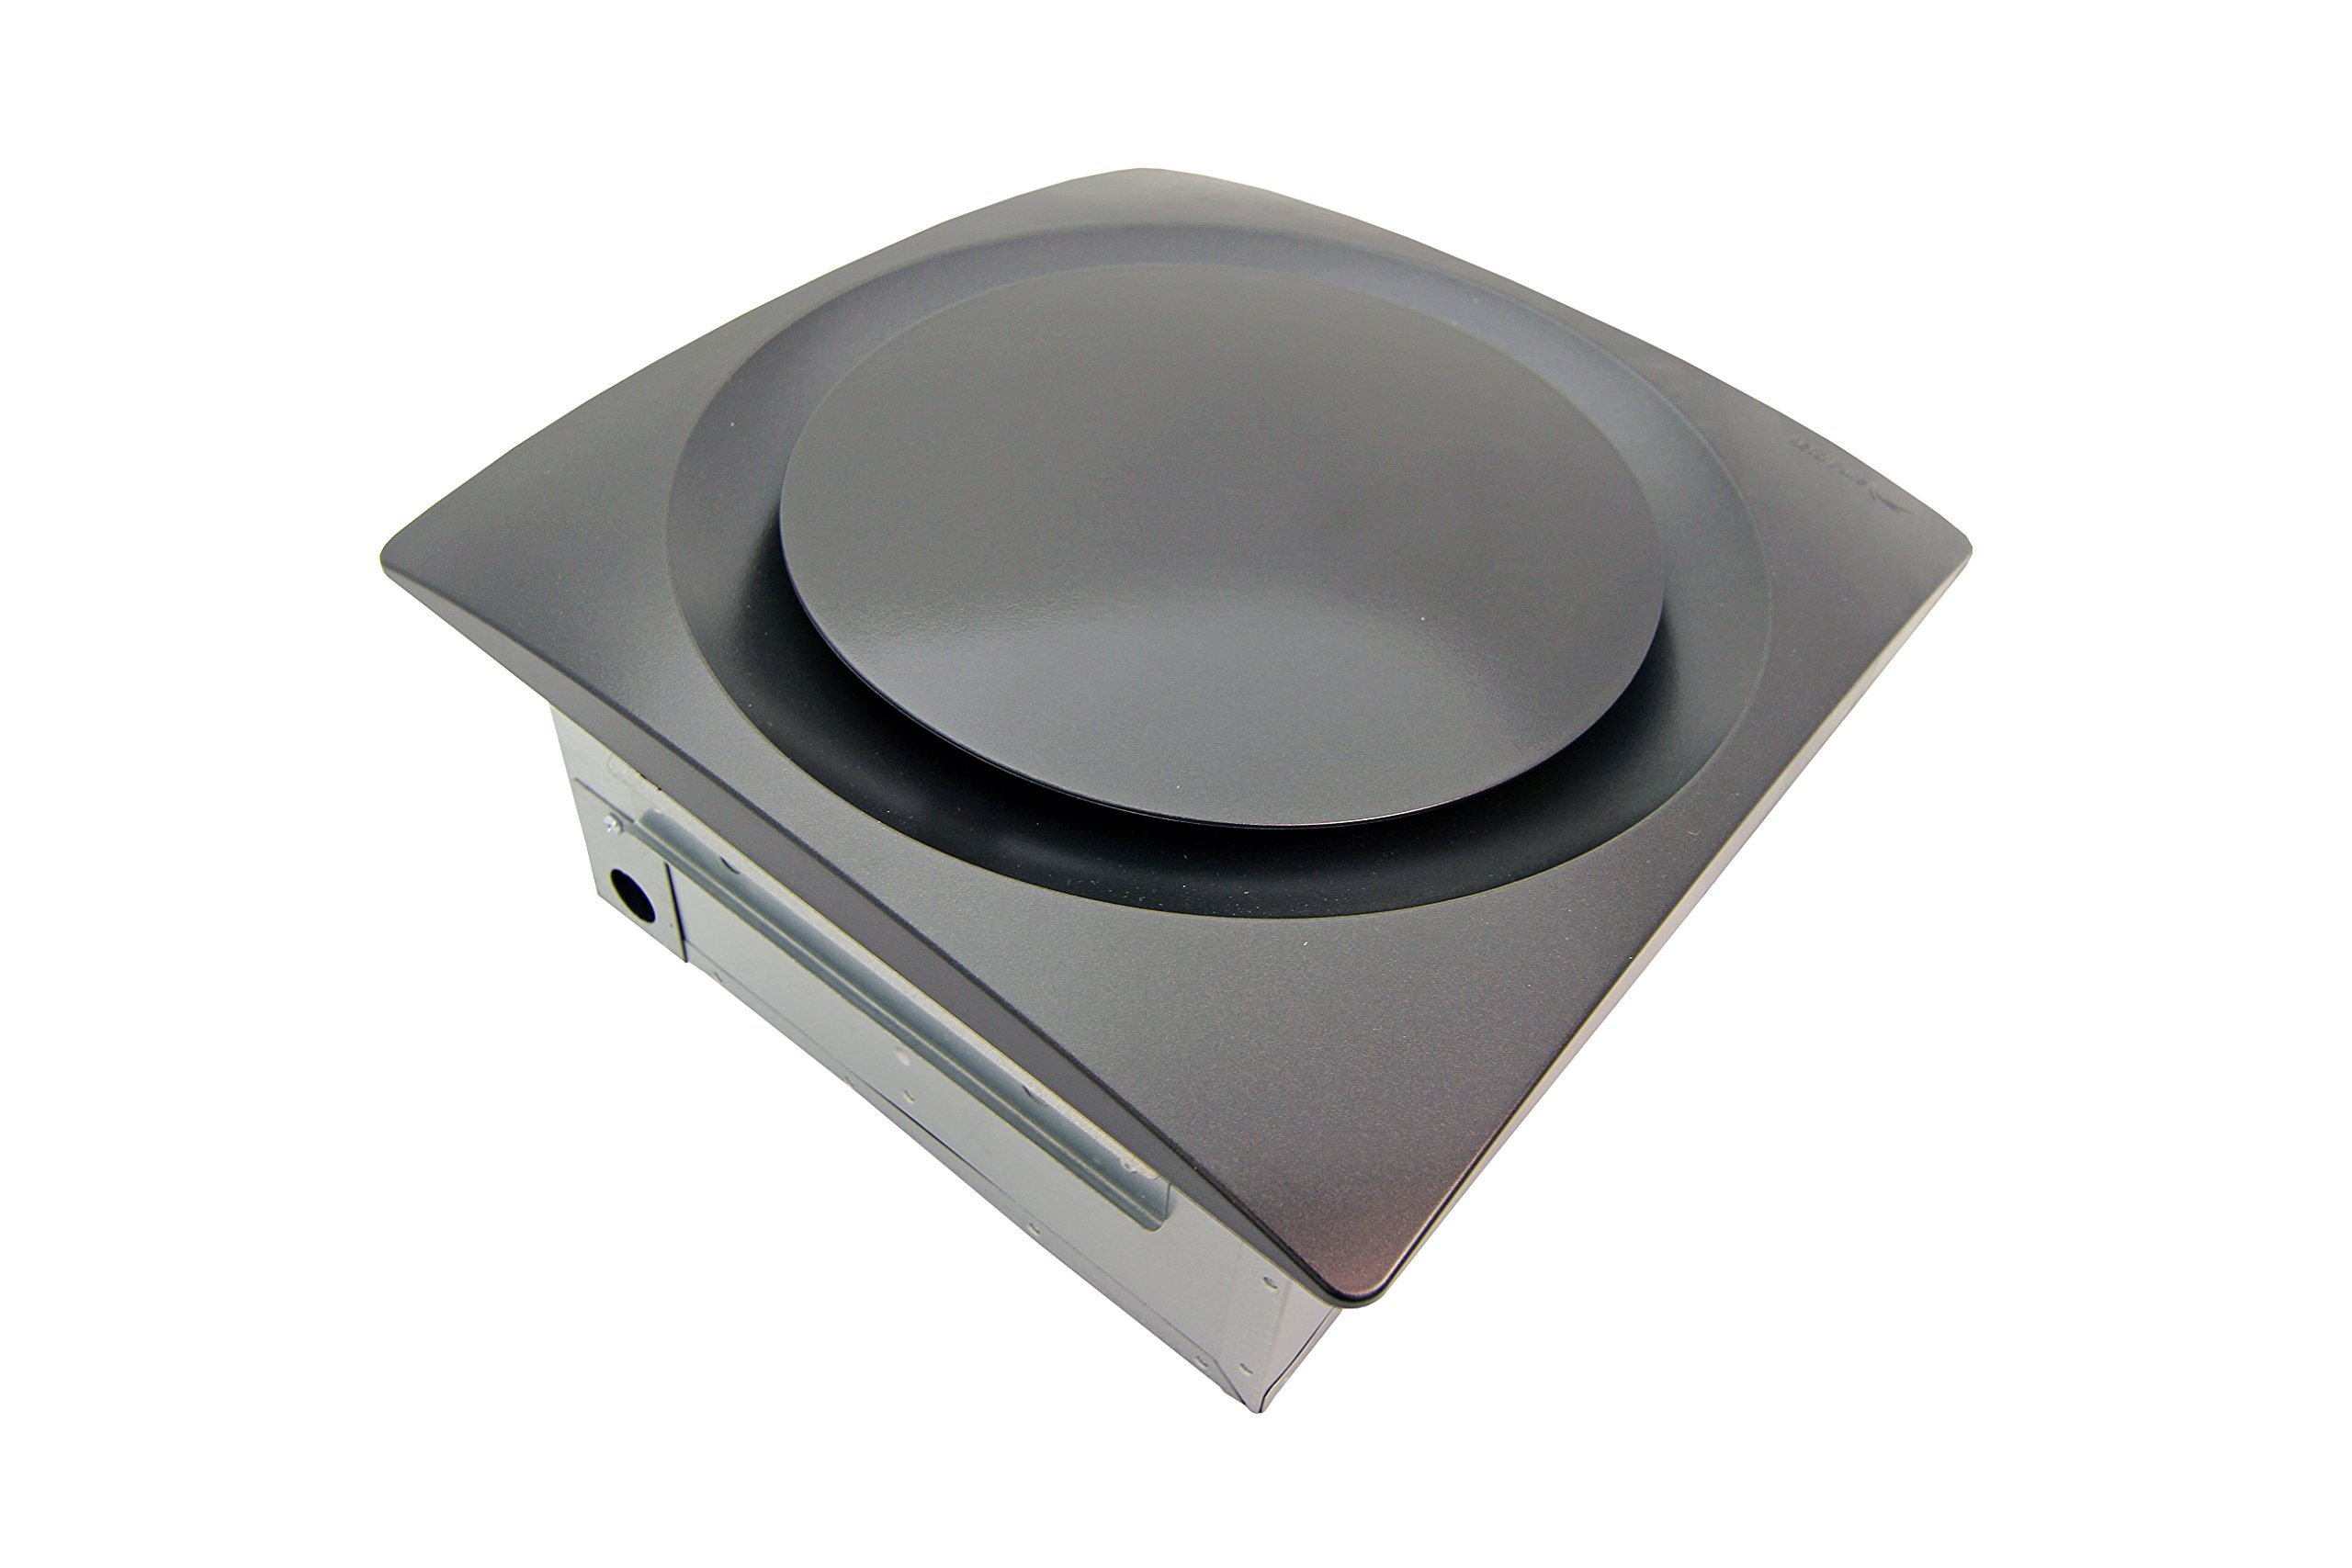 AP120-S G6 OR Slim Fit 120-CFM Bathroom Ventilation Fan with Oil Rubbed Bronze Grille